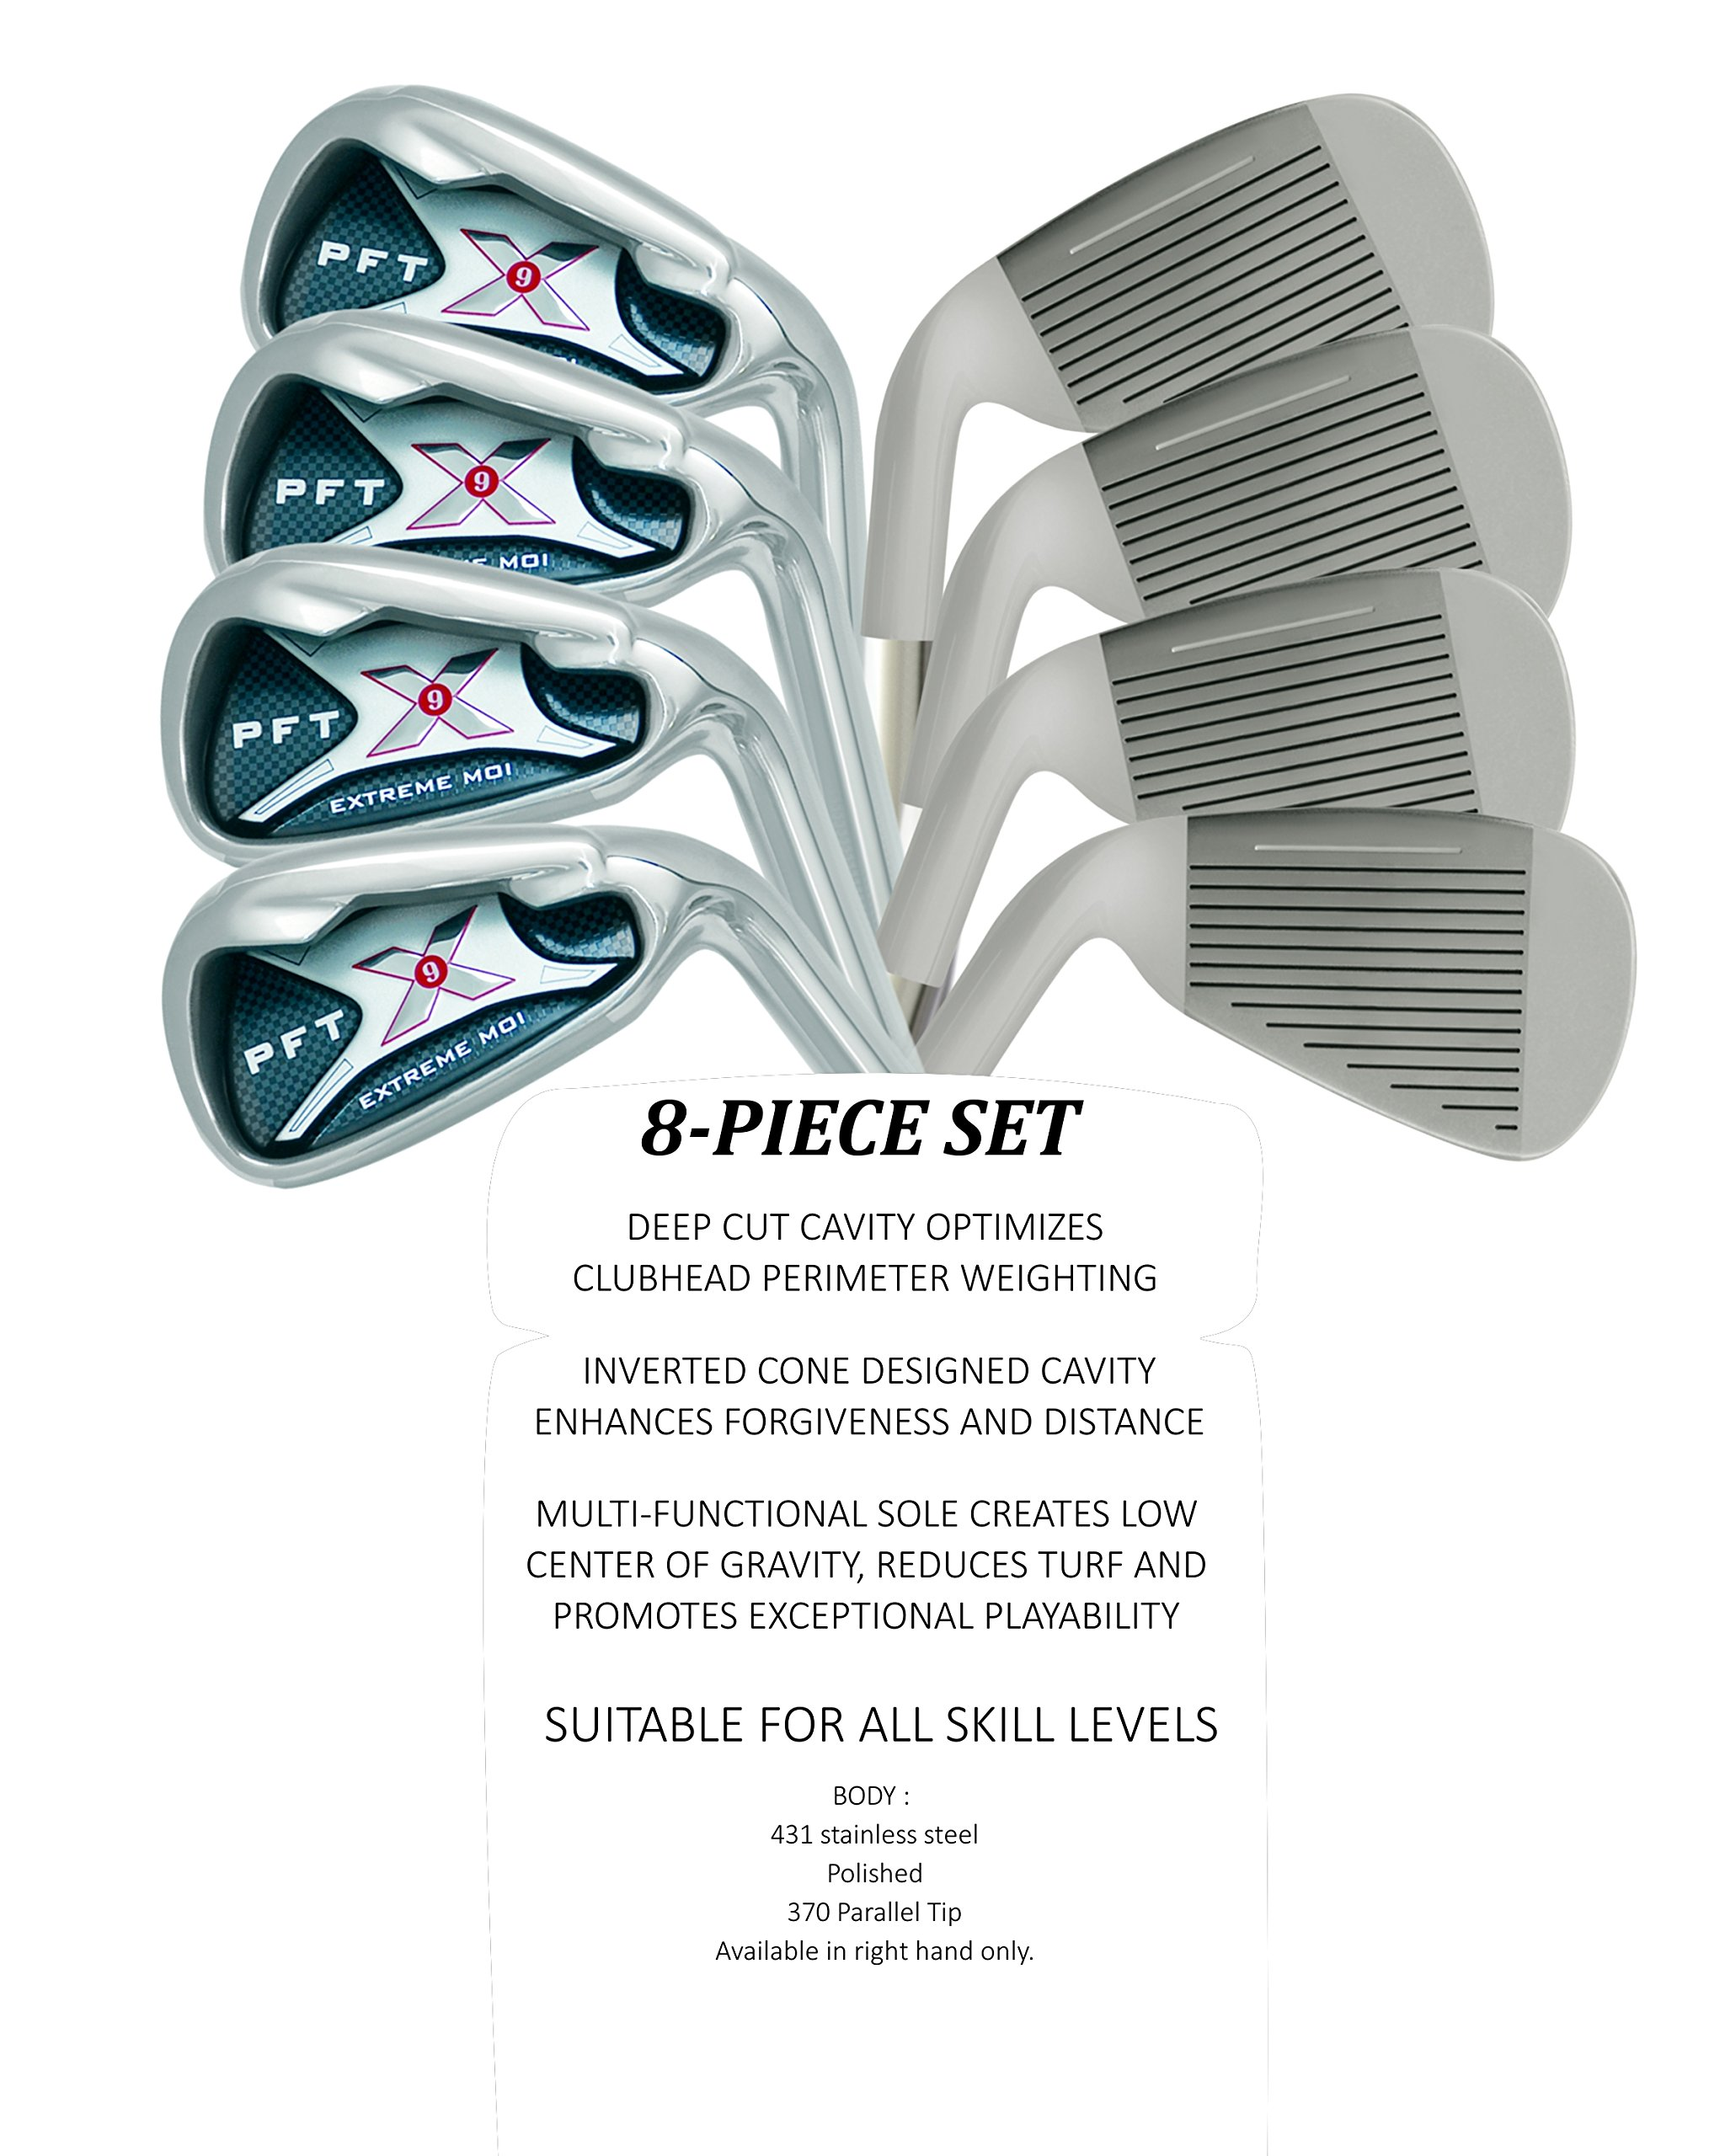 PFT X9 High Moi Extreme 9 Iron Set Golf Clubs Custom Made Right Hand Stiff S Flex Steel Shafts Complete Mens Irons Ultra Forgiving OS Oversized Wide Sole Ibrid Club by PFT X9 (Image #4)